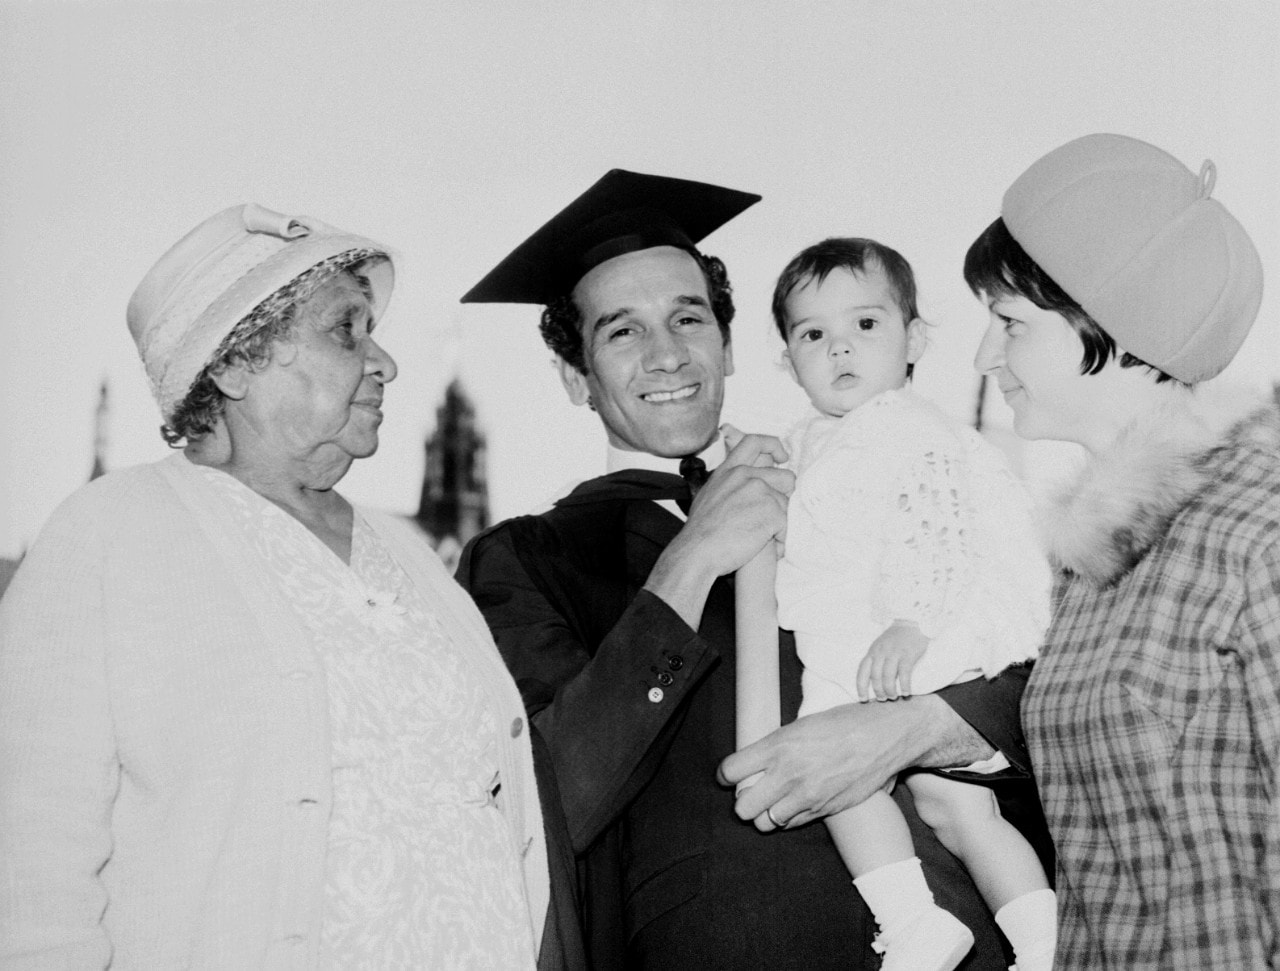 A photo of Charles Perkins and his family on his graduation day, May 1966.